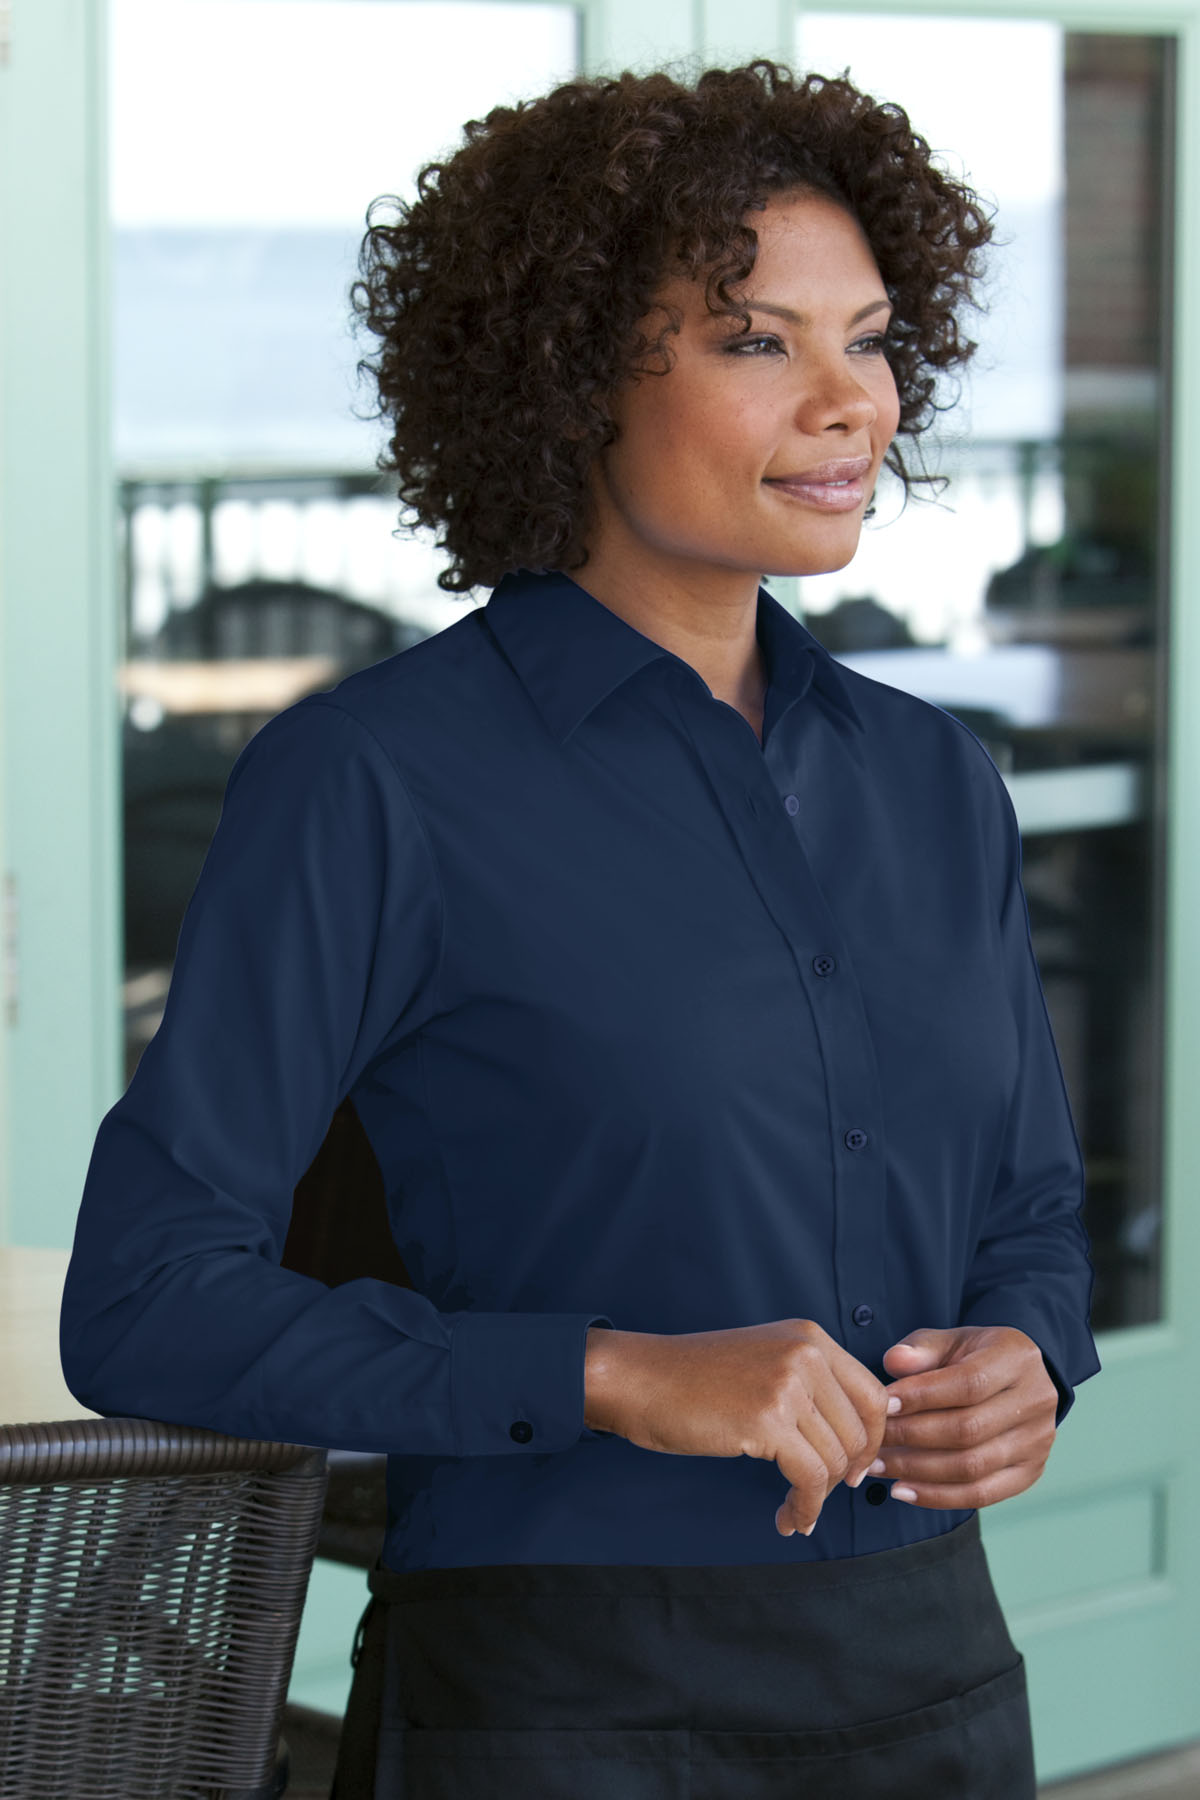 Vantage 1101 - Women's Blended Poplin Shirt